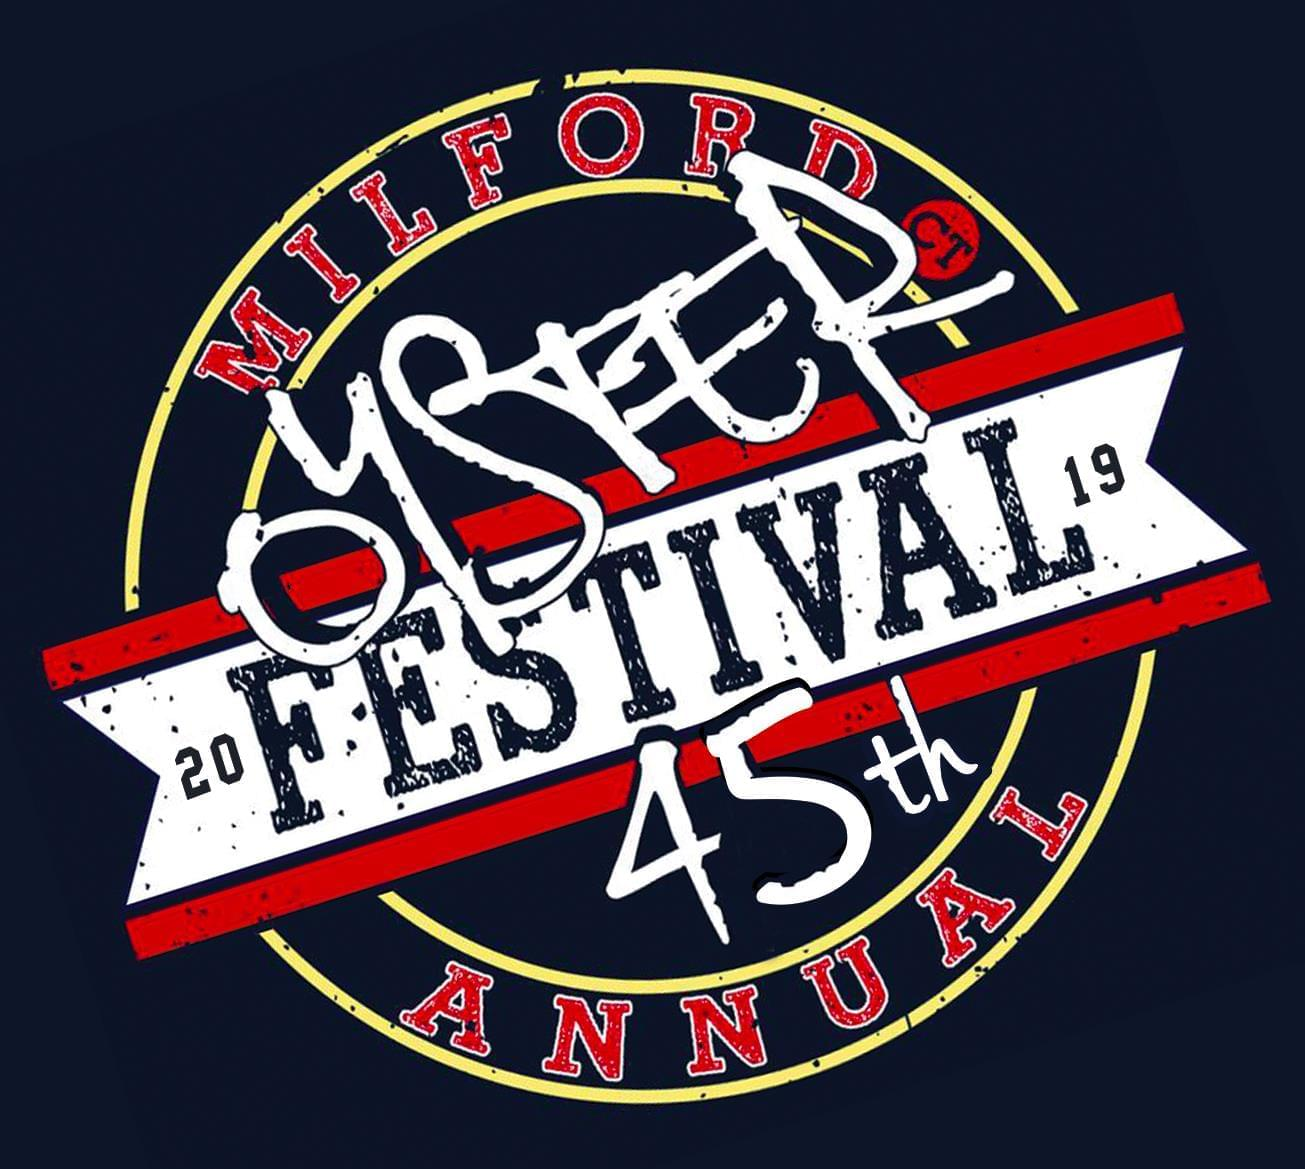 The 45th Annual Milford Oyster Festival